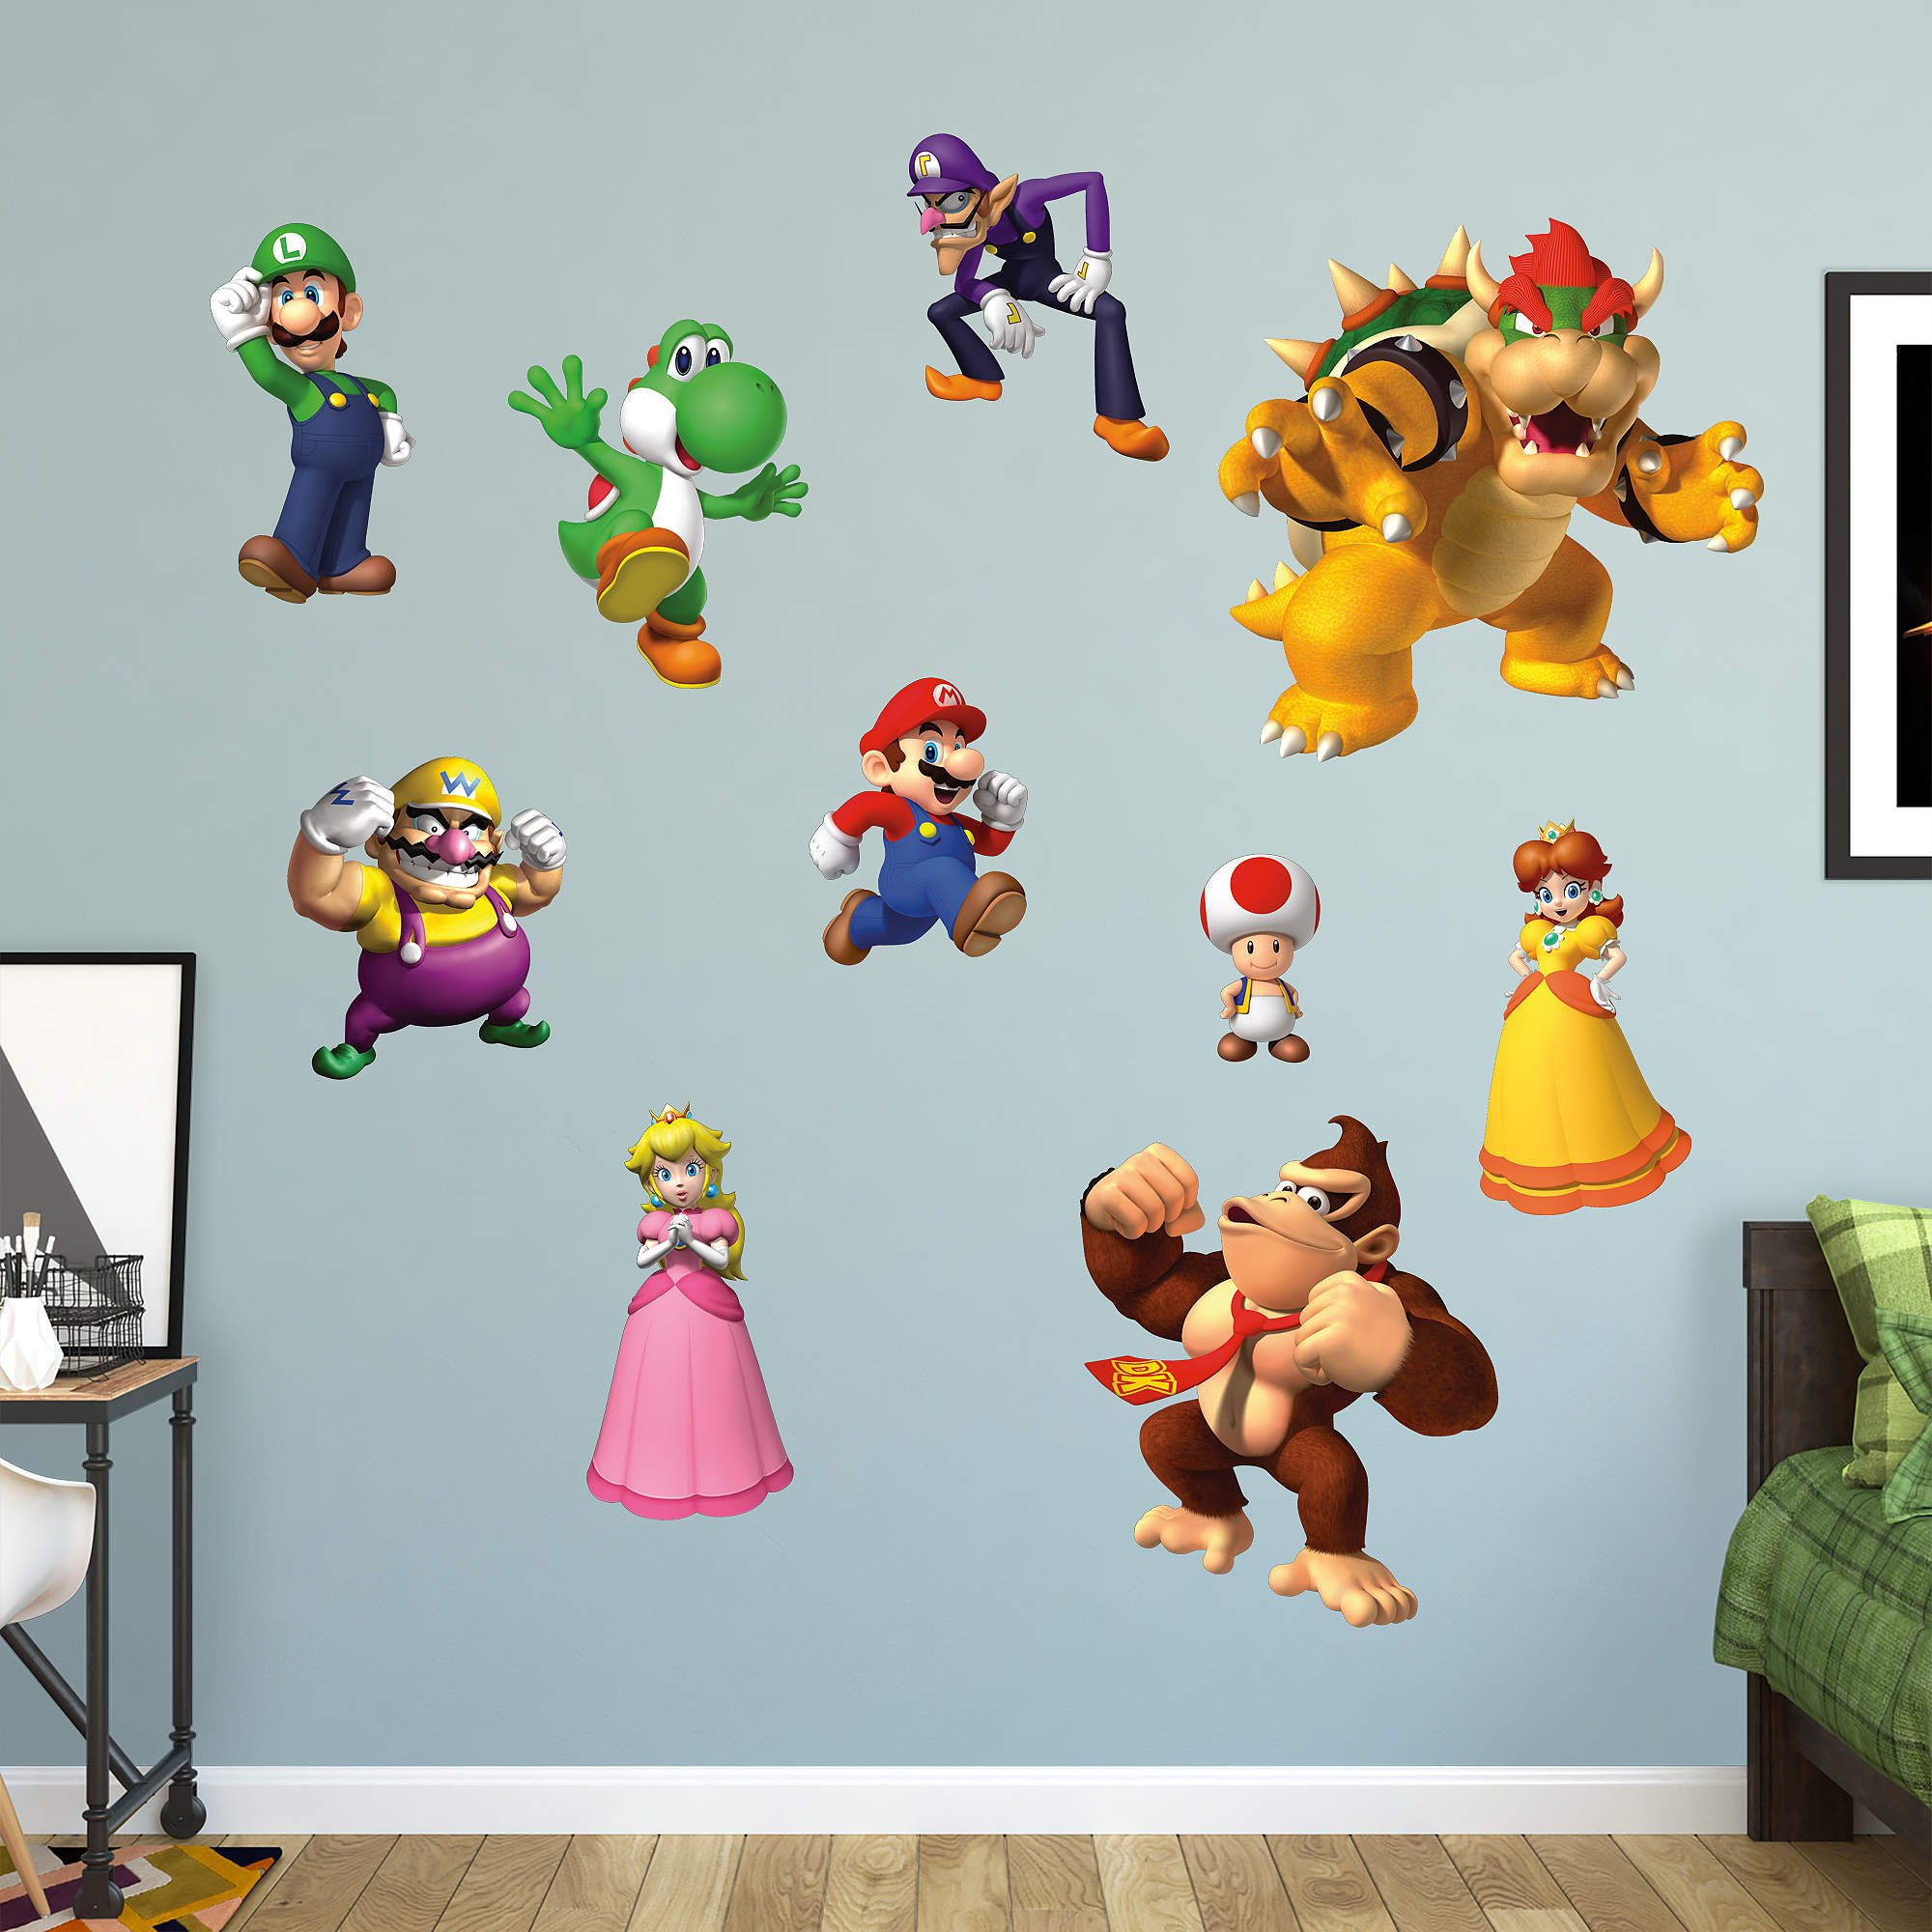 FATHEAD Super Mario: Characters Collection-Giant Officially Licensed Nintendo Removable Wall Decal by FATHEAD